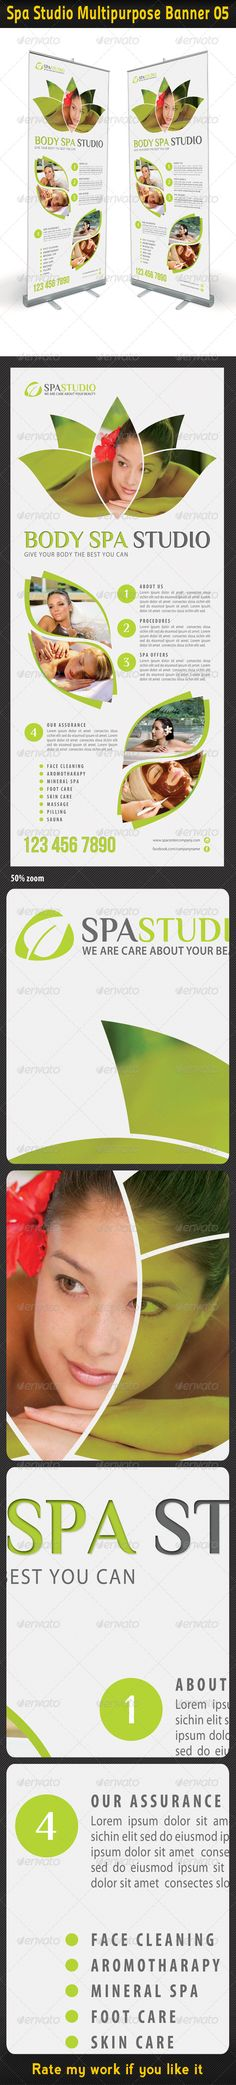 Spa Studio Multipurpose Banner 05 #GraphicRiver High impact Outdoor Banner Template Layout, perfect for business advertisement or product